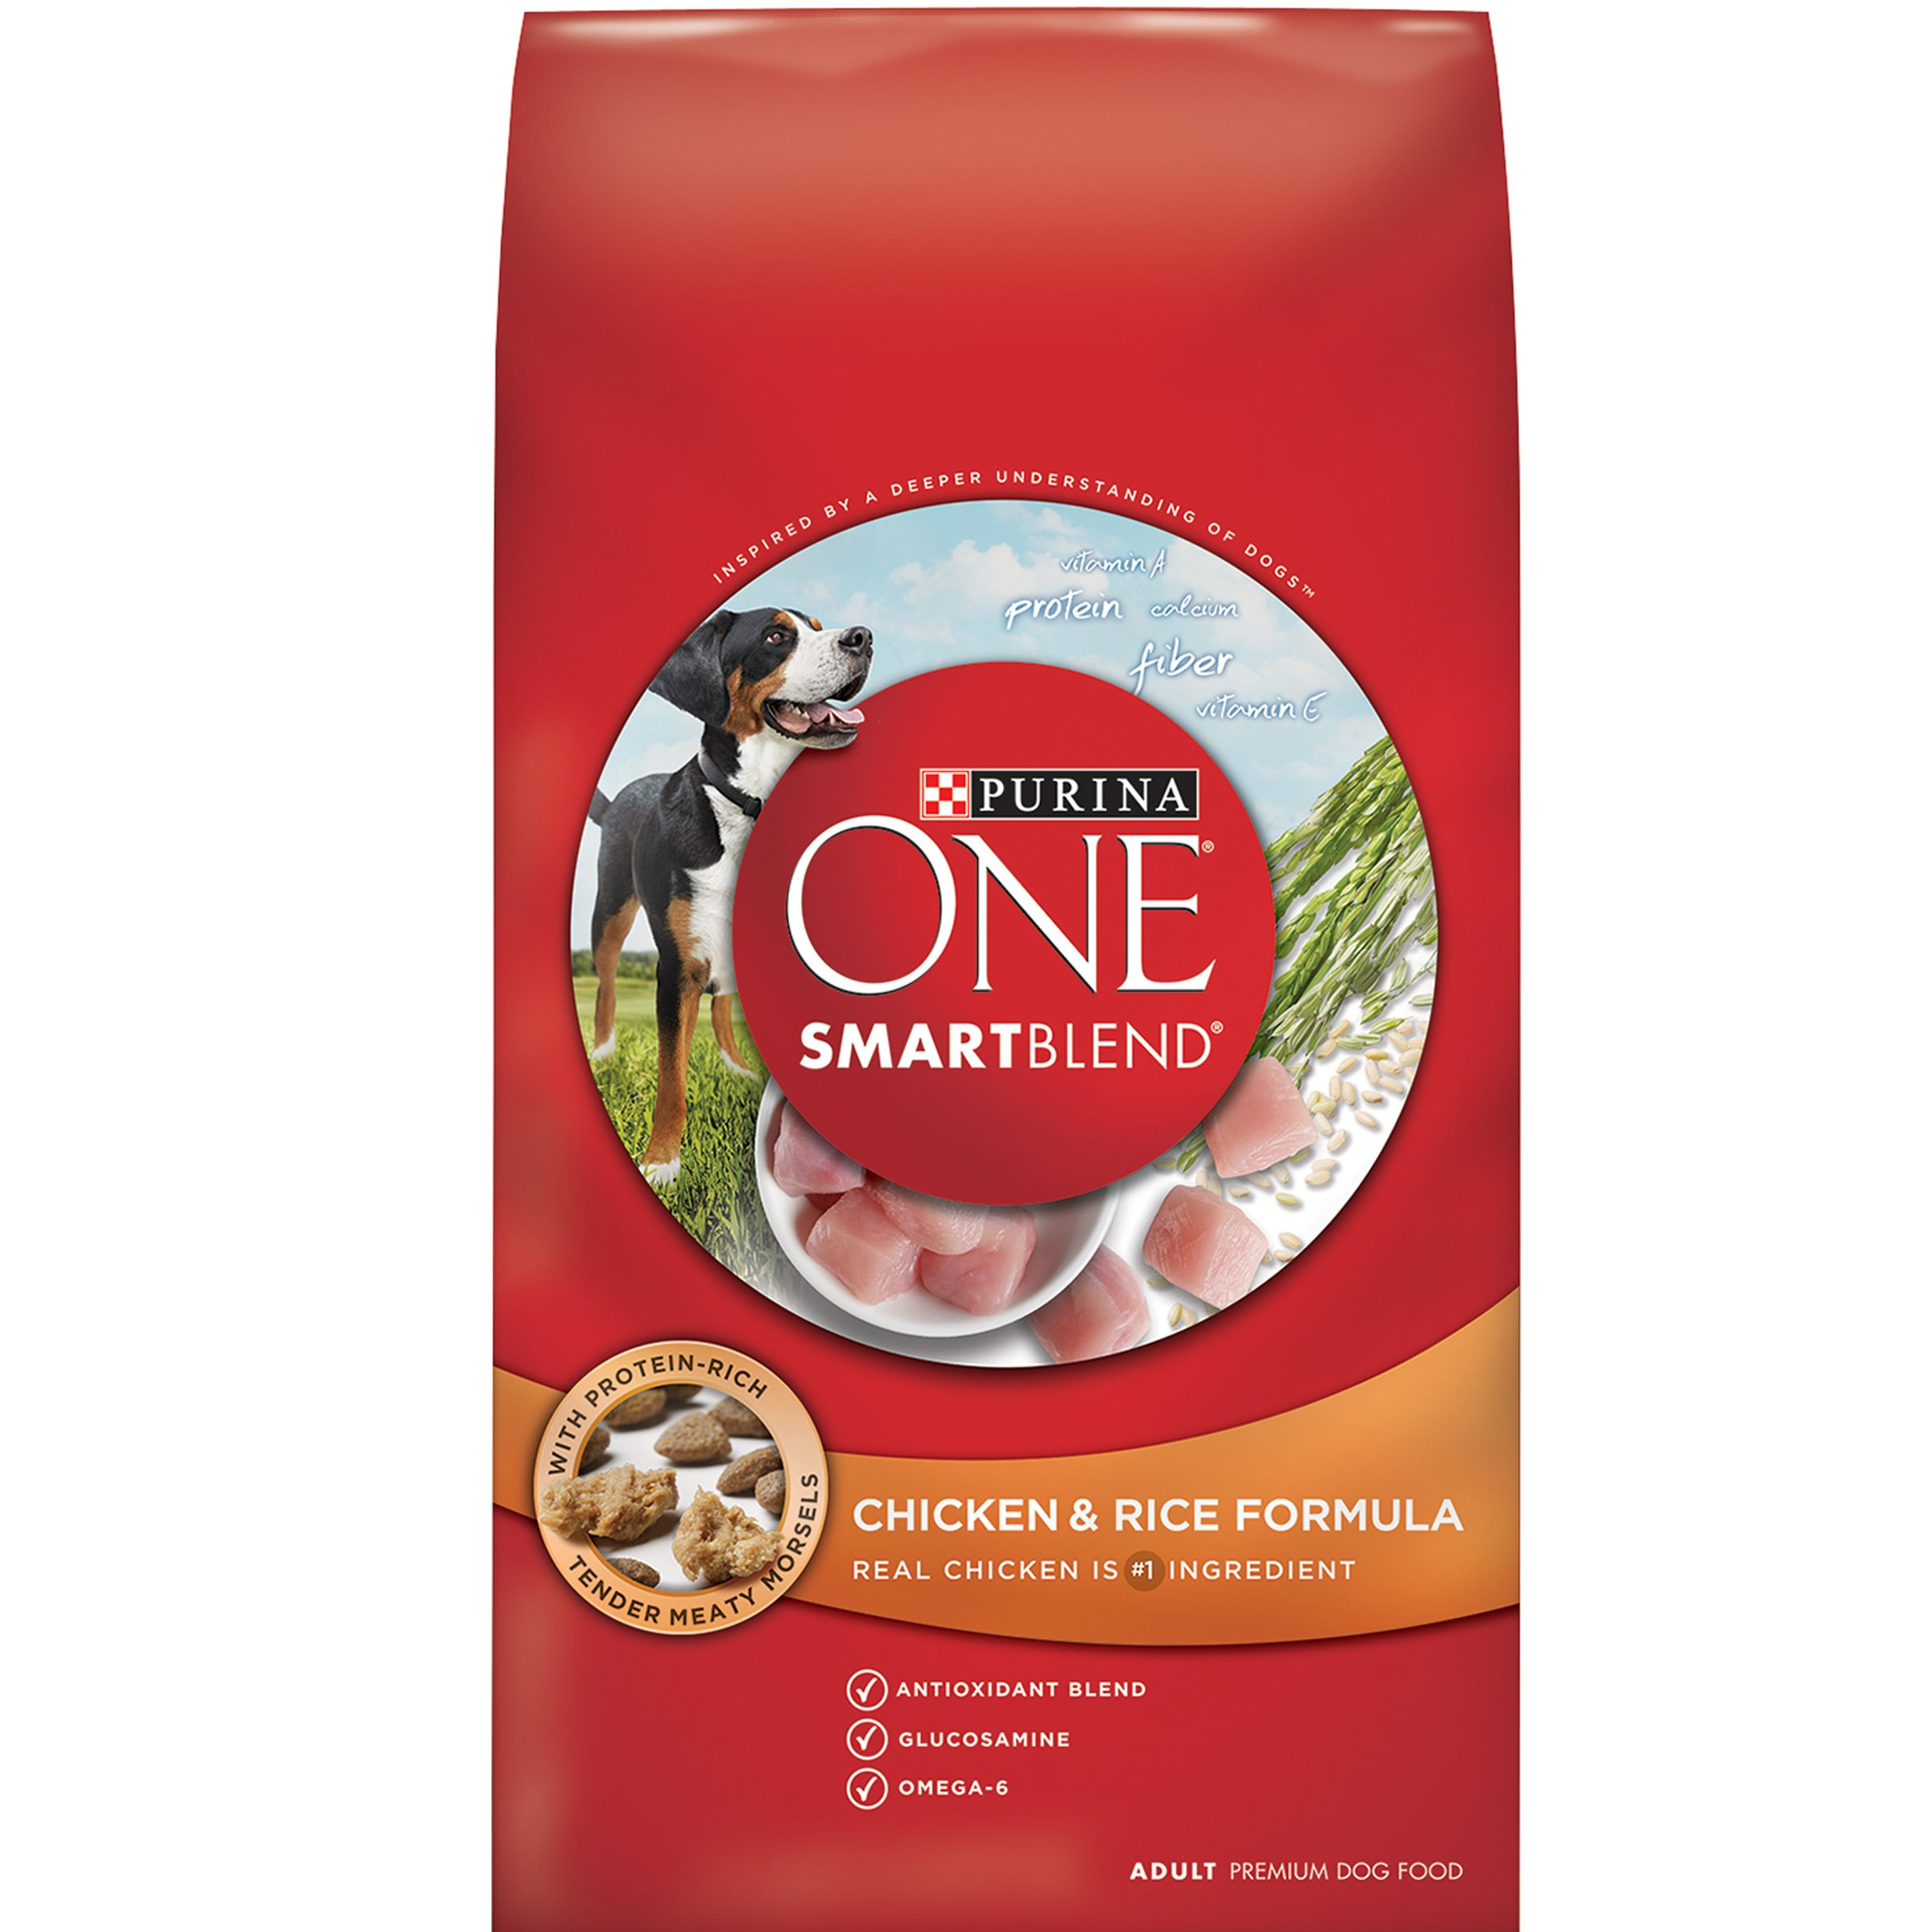 Purina ONE SmartBlend Chicken & Rice Formula Dry Dog Food 4 lb. Bag (Pack of 6)